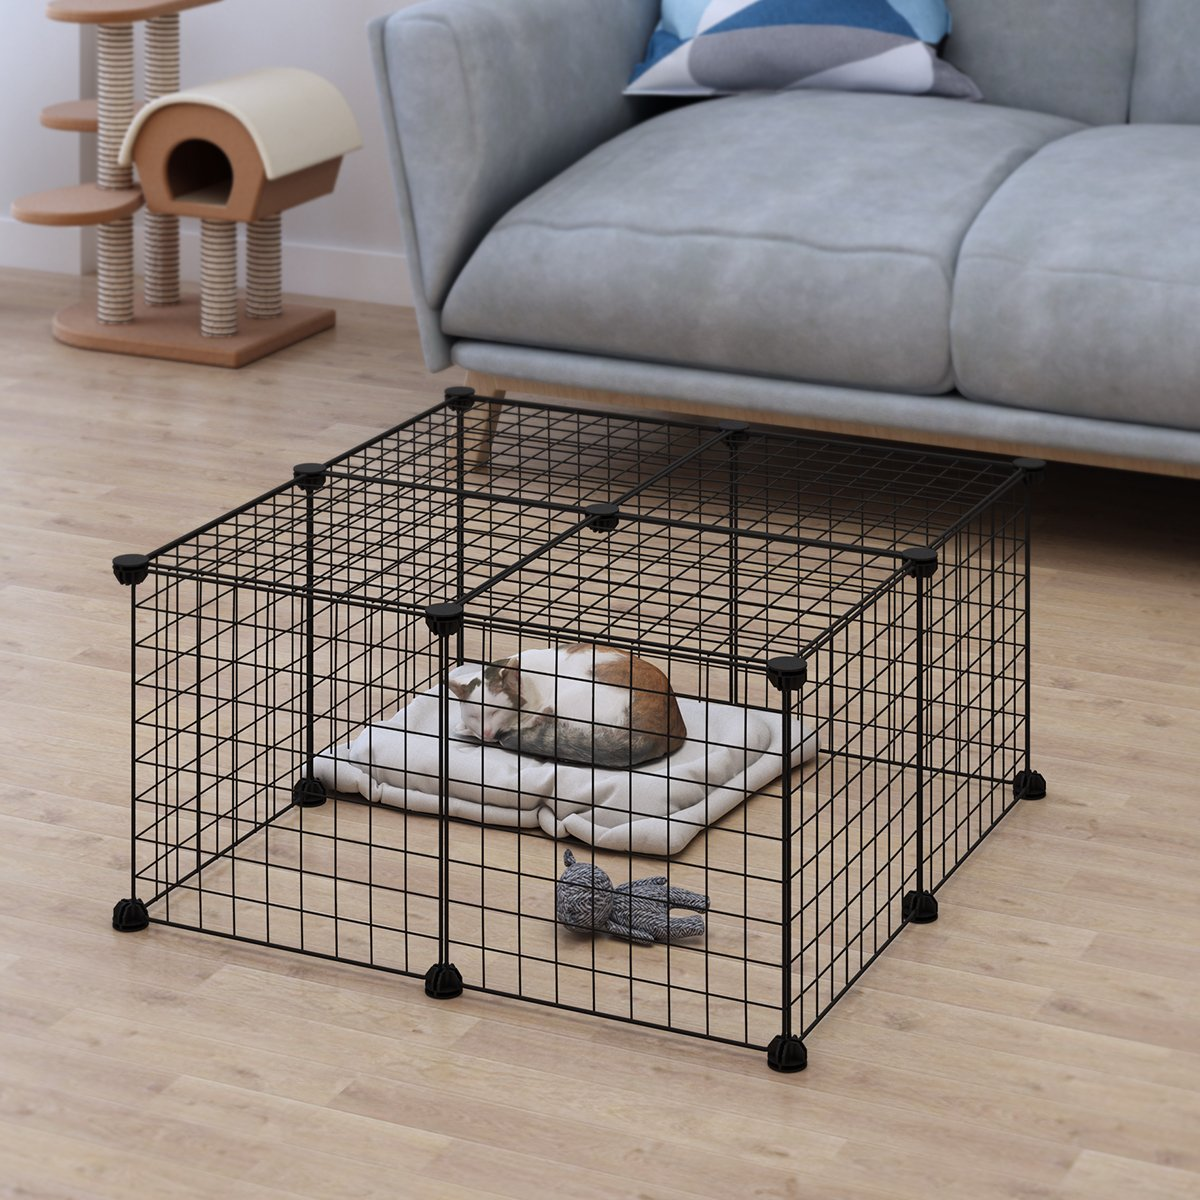 LANGRIA 24 pcs Metal Wire Storage Cubes Organizer, DIY Small Animal Cage for Rabbit, Guinea Pigs, Puppy | Pet Products Portable Metal Wire Yard Fence (Black) by LANGRIA (Image #1)